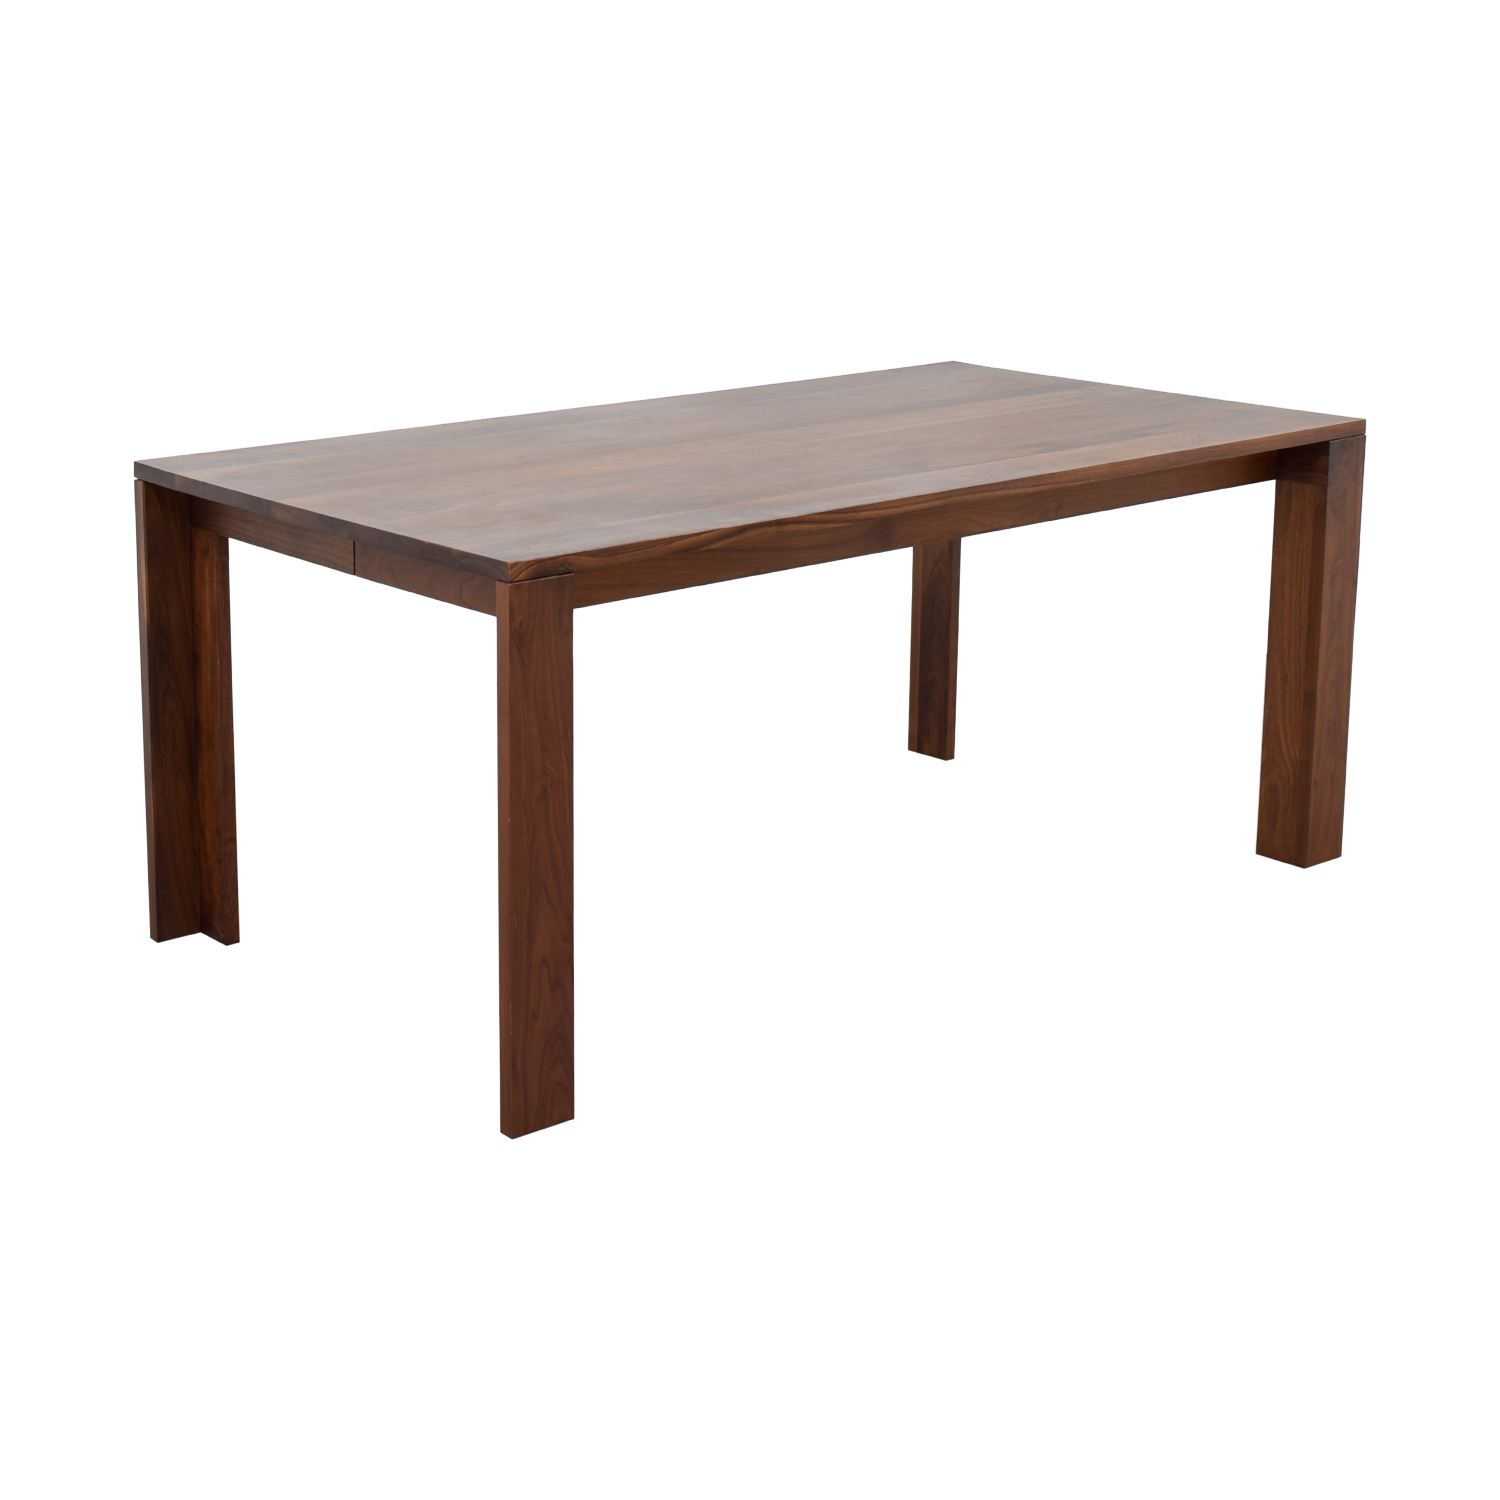 design within reach chair walnut wayfair table and chairs 66 off dwr solid dining